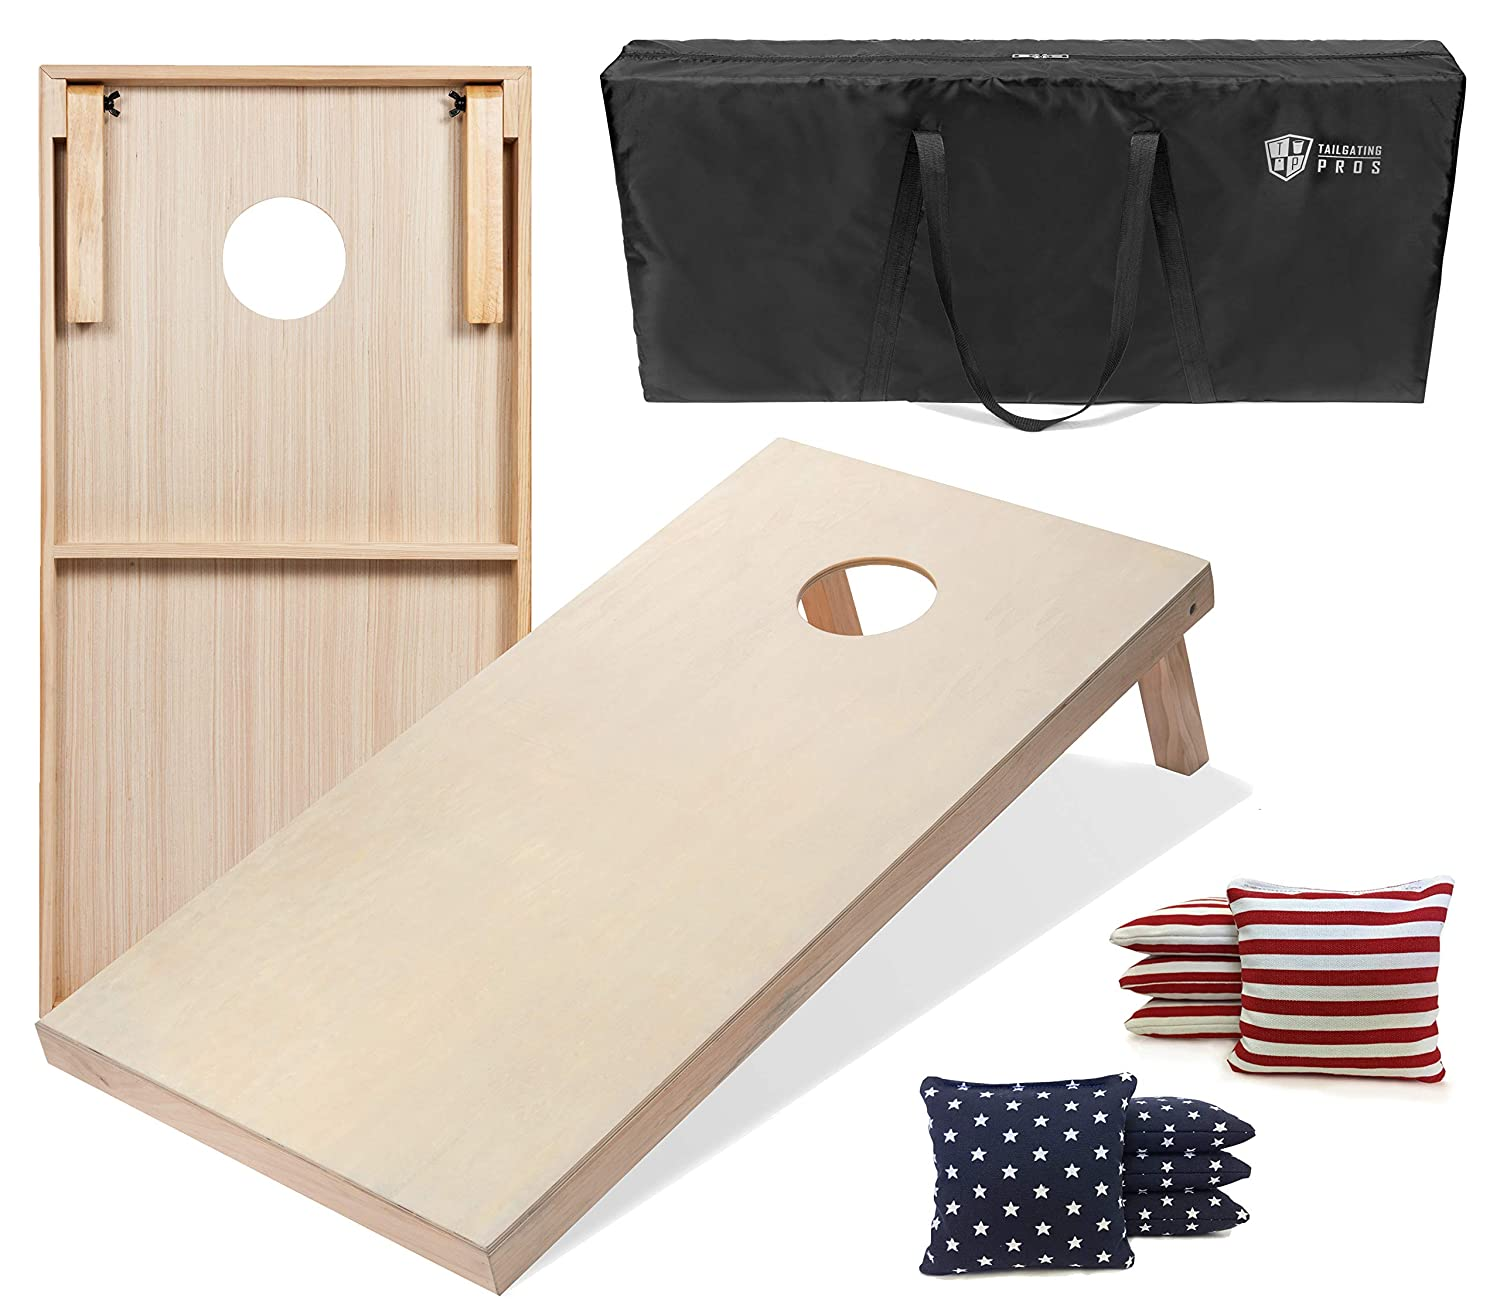 Stars   Stripes 3'x2' Boards Tailgating Pros Cornhole Boards  4'x2' & 3'x2' Cornhole Game w Carrying Case & Set of 8 Corn Hole Bags  150+ color Combos  Optional LED Lights